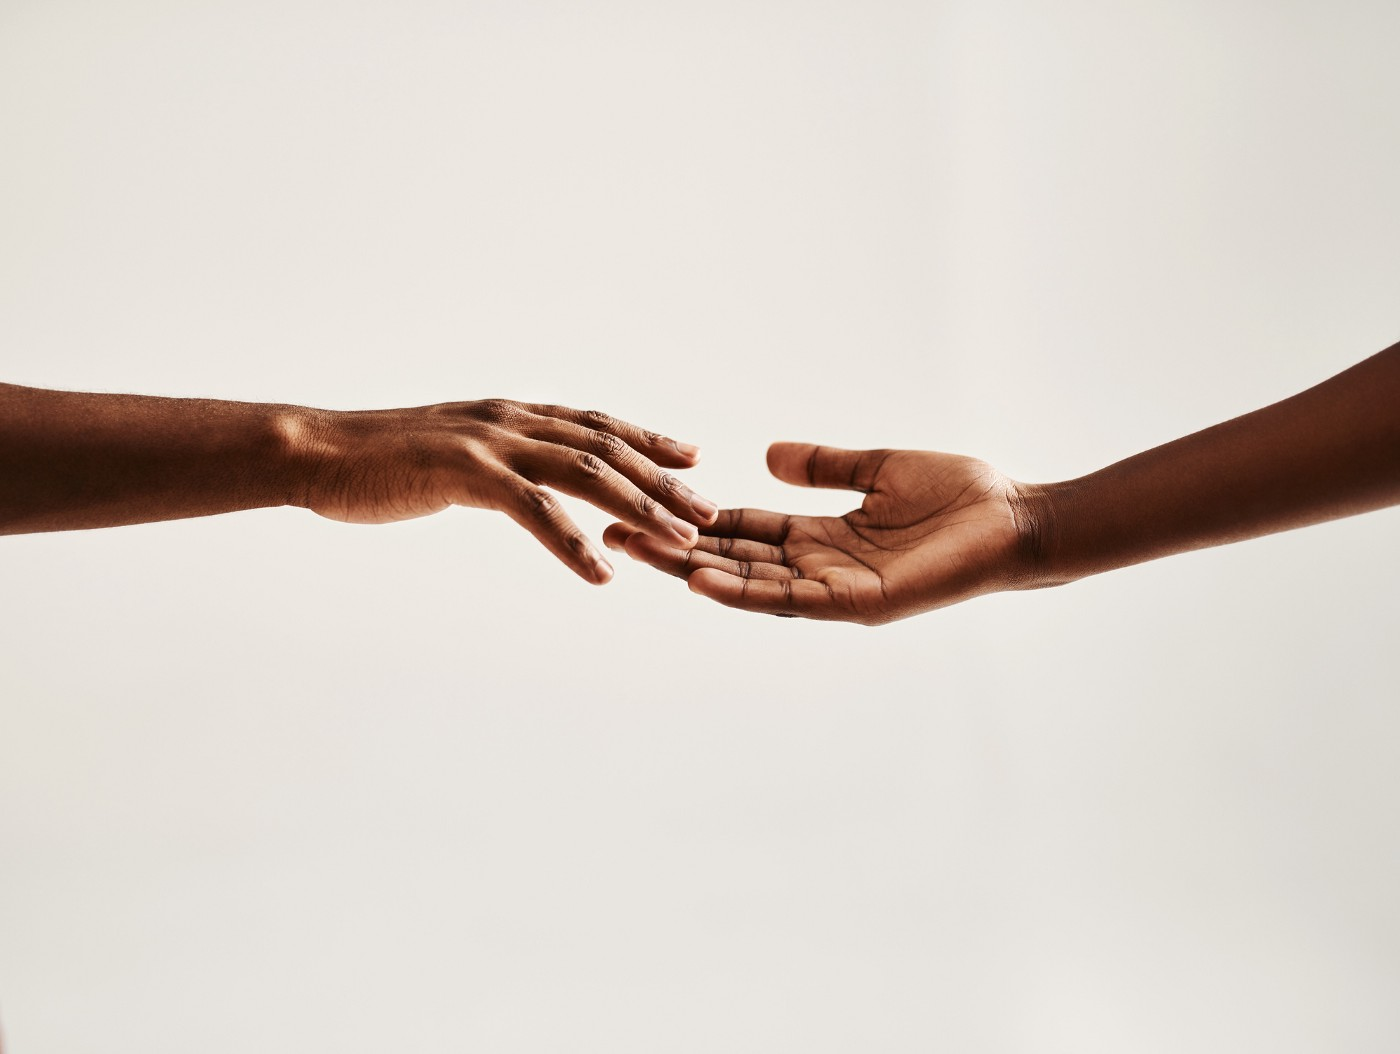 A photo of two hands touching each other.